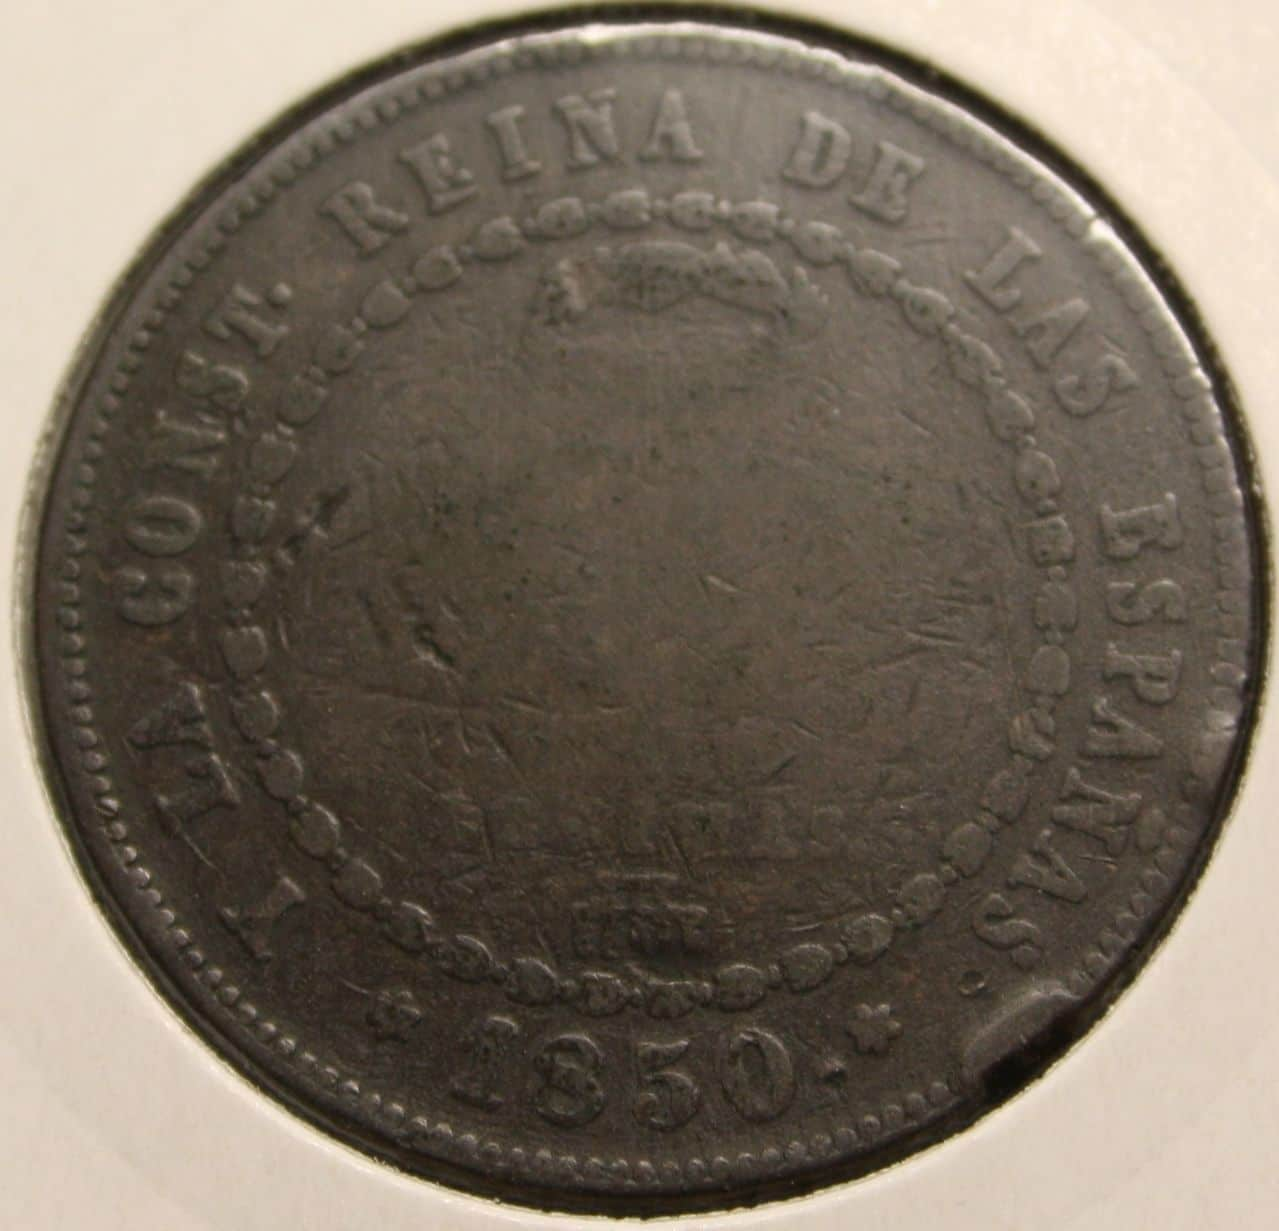 MEDIO REAL, CINCO DECIMAS 1848 ISABEL II - MADRID Isabel_ii_cobre_b